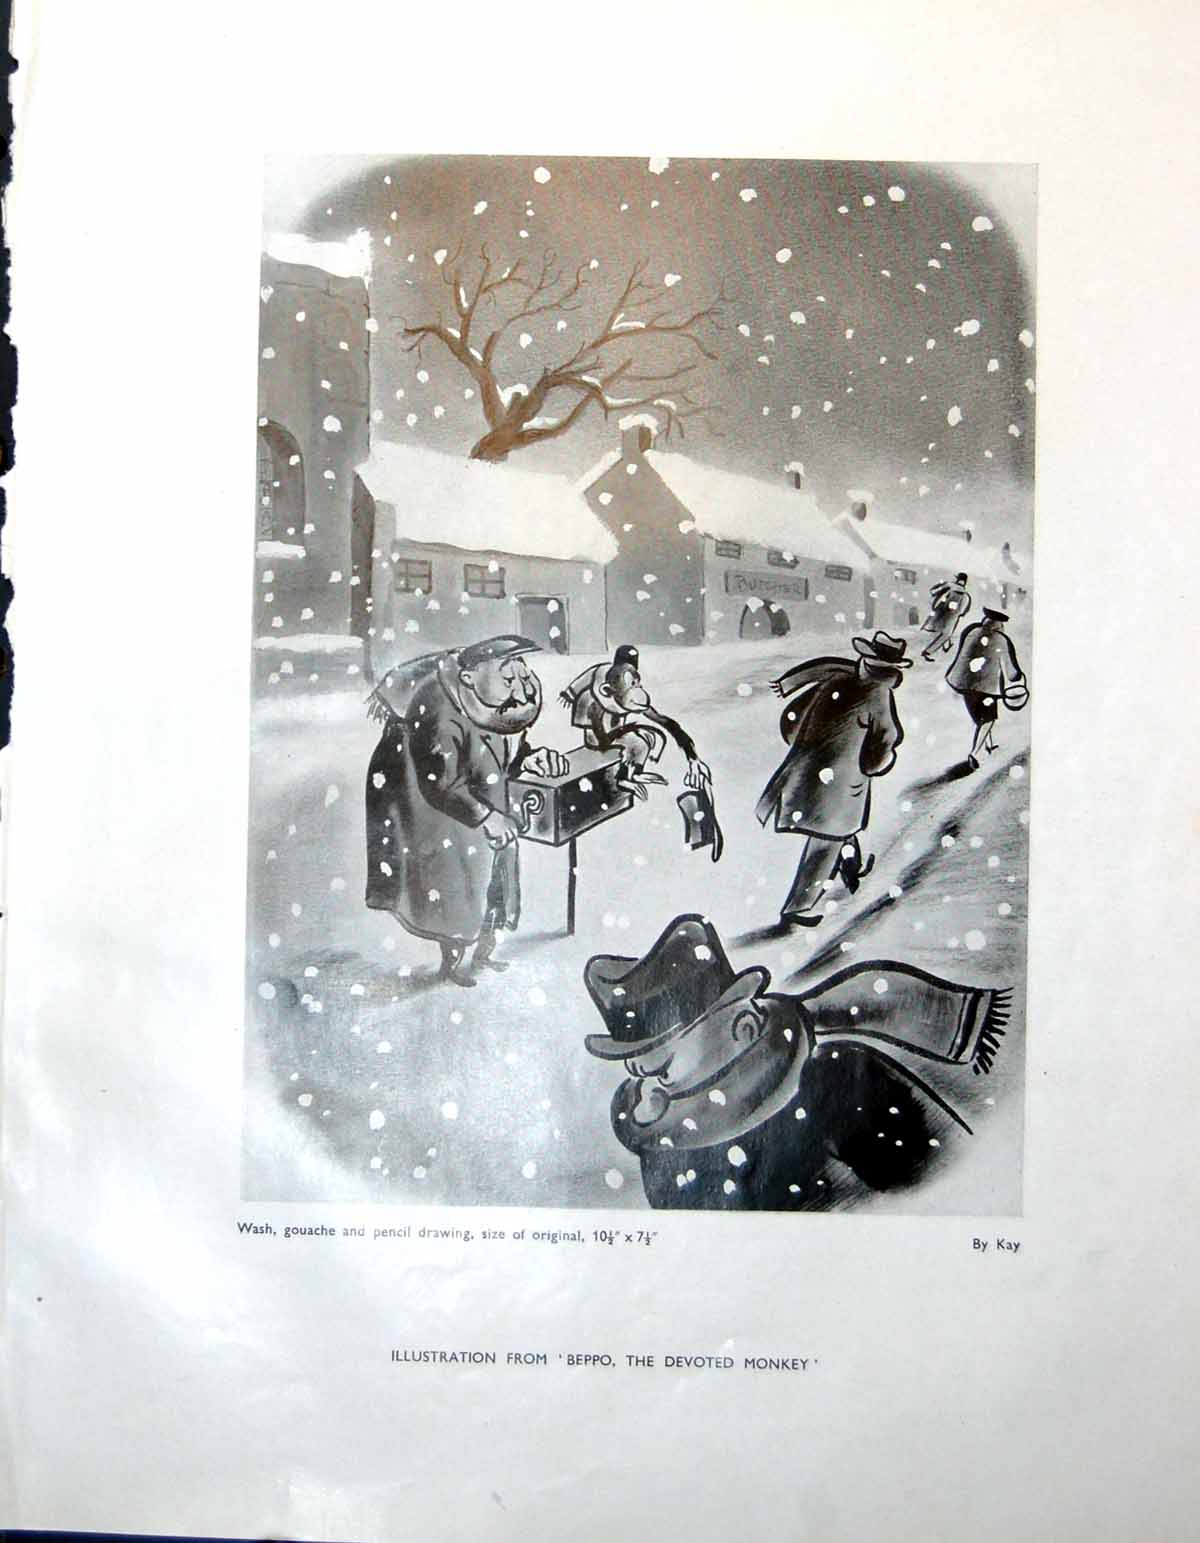 Old-Vintage-Print-Illustration-Beppo-Kay-Monkey-Street-Scenes-Snow-1947-20th